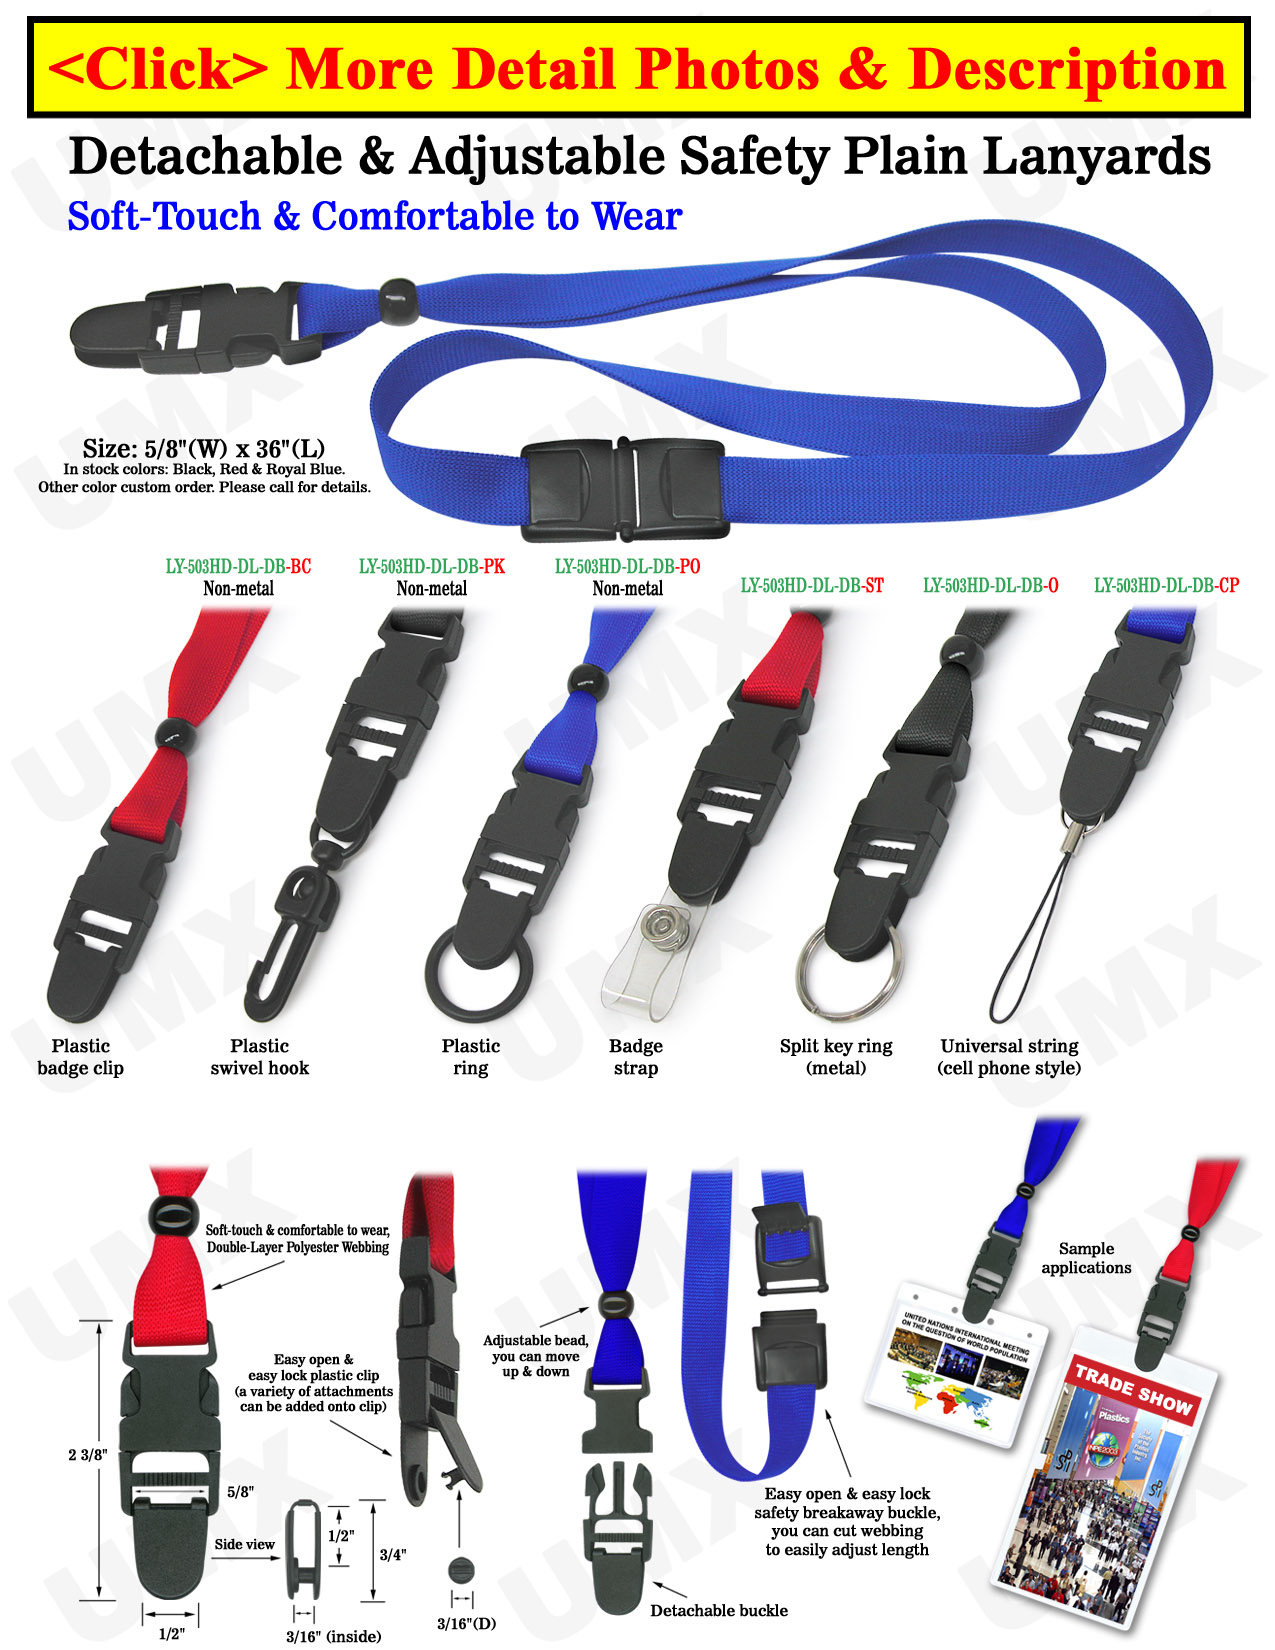 "5/8"" Adjustable & Detachable Safety Plain Lanyards With Detachable Side Release Buckles LY-503HD-DL-DB/Per-Piece"